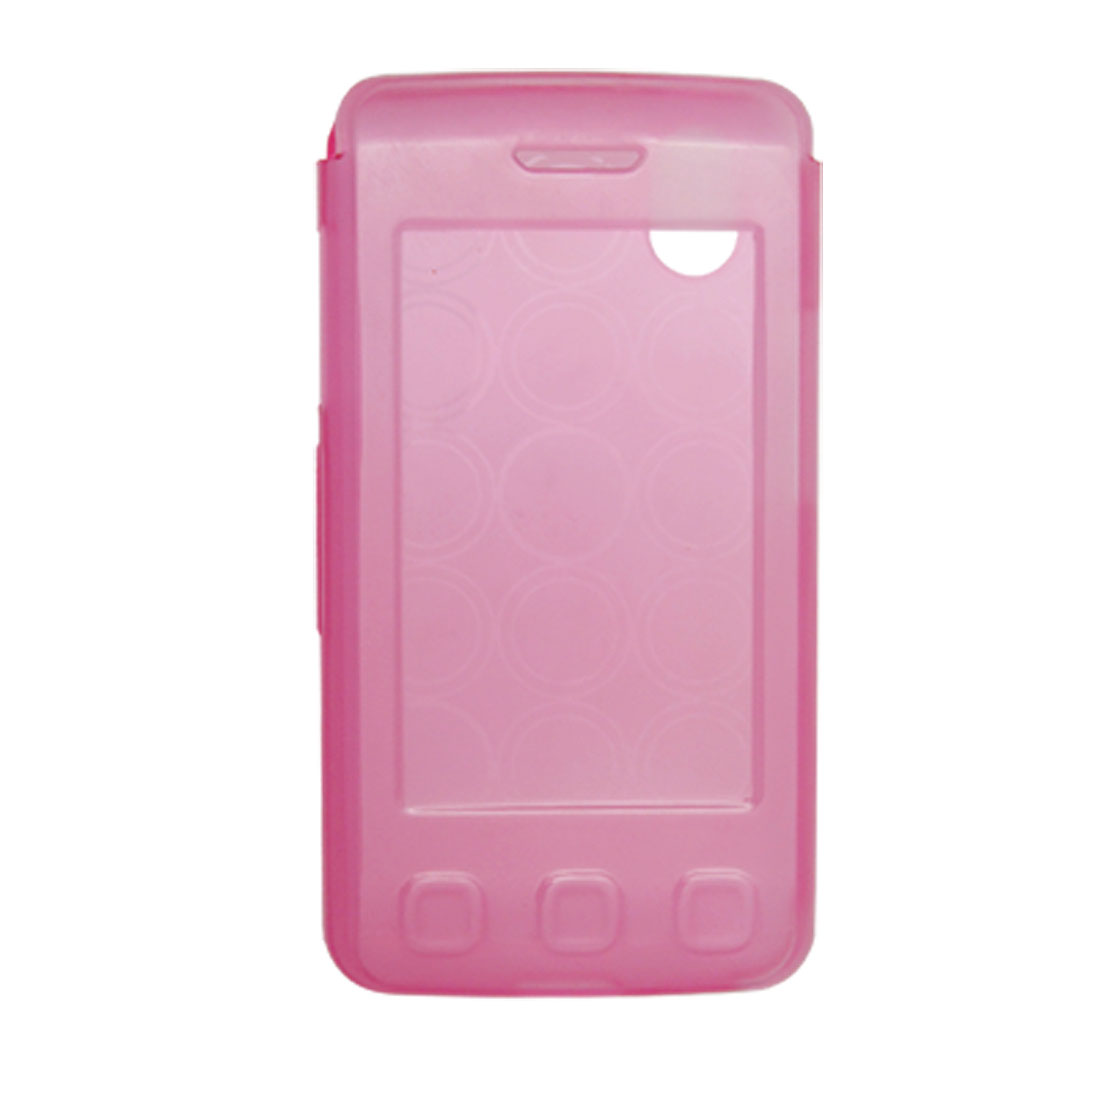 Pink Circles Soft Plastic Cover Case for LG KP550 KP570